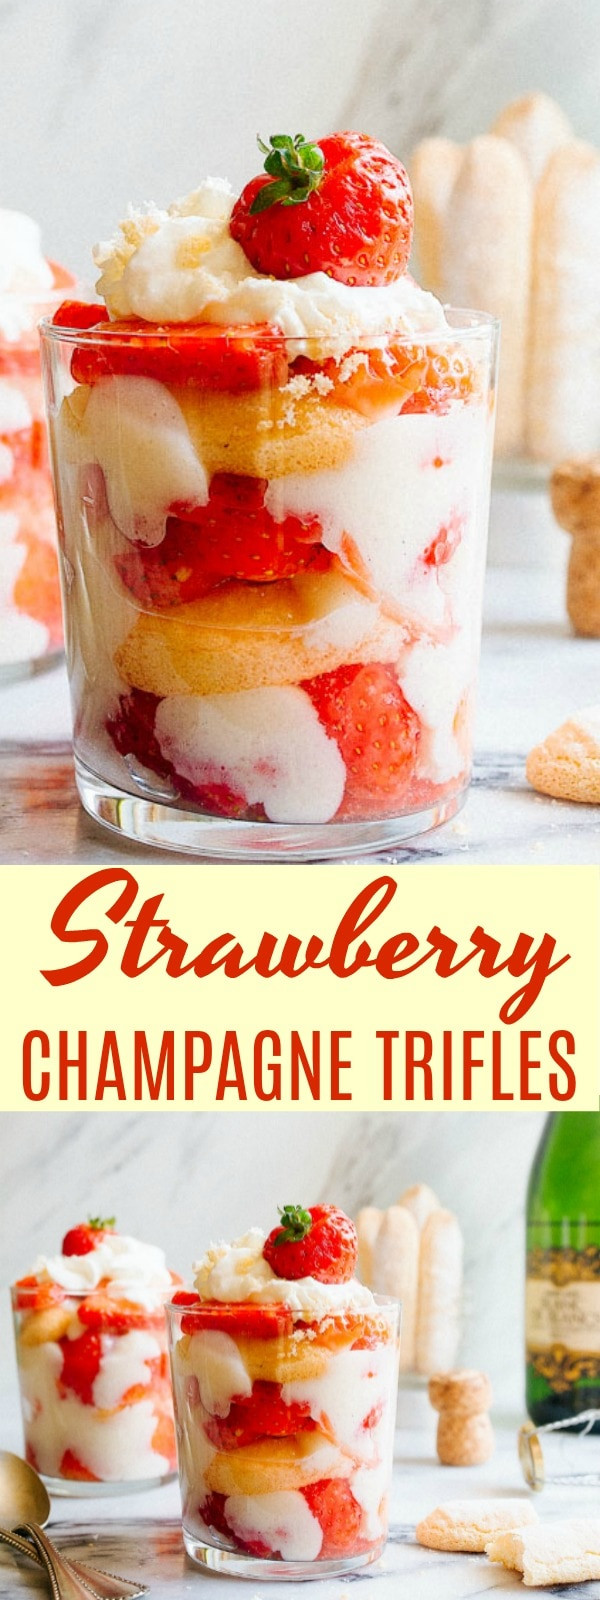 New Year Day Dessert Traditions  Strawberry Champagne Trifles for Two